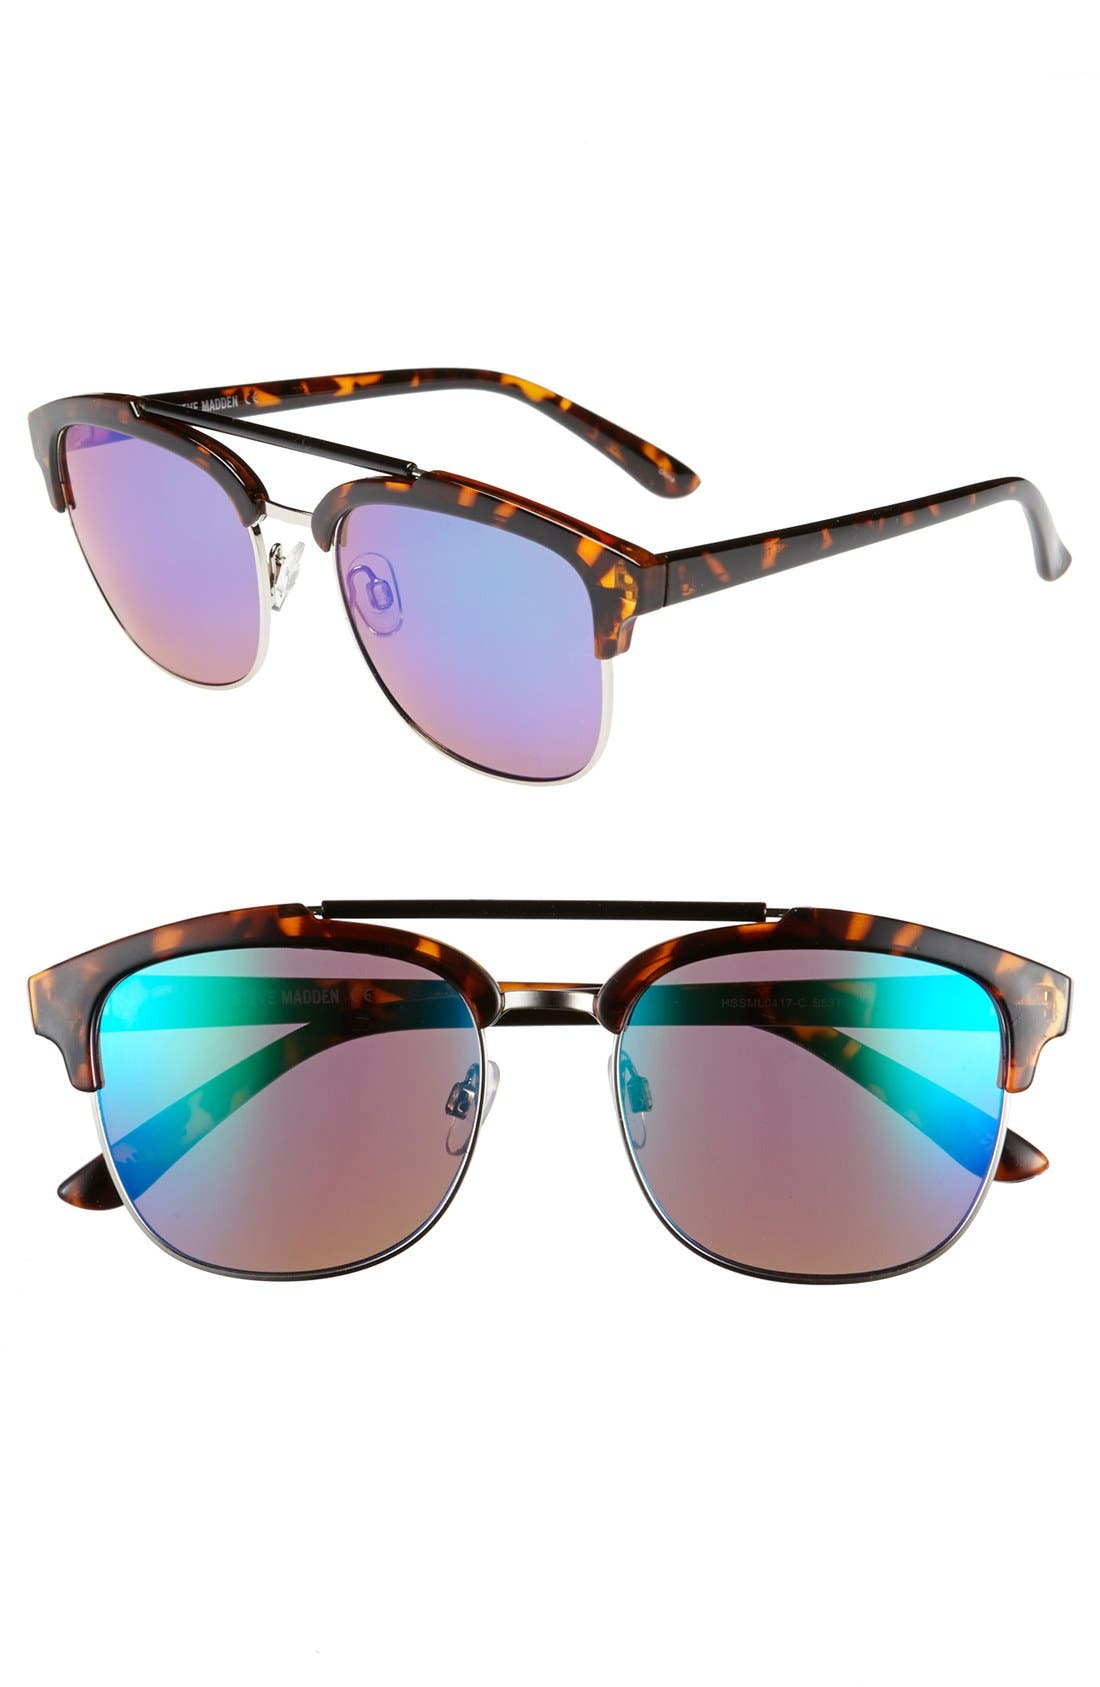 Alternate Image 1 Selected - Steve Madden 55mm Sunglasses